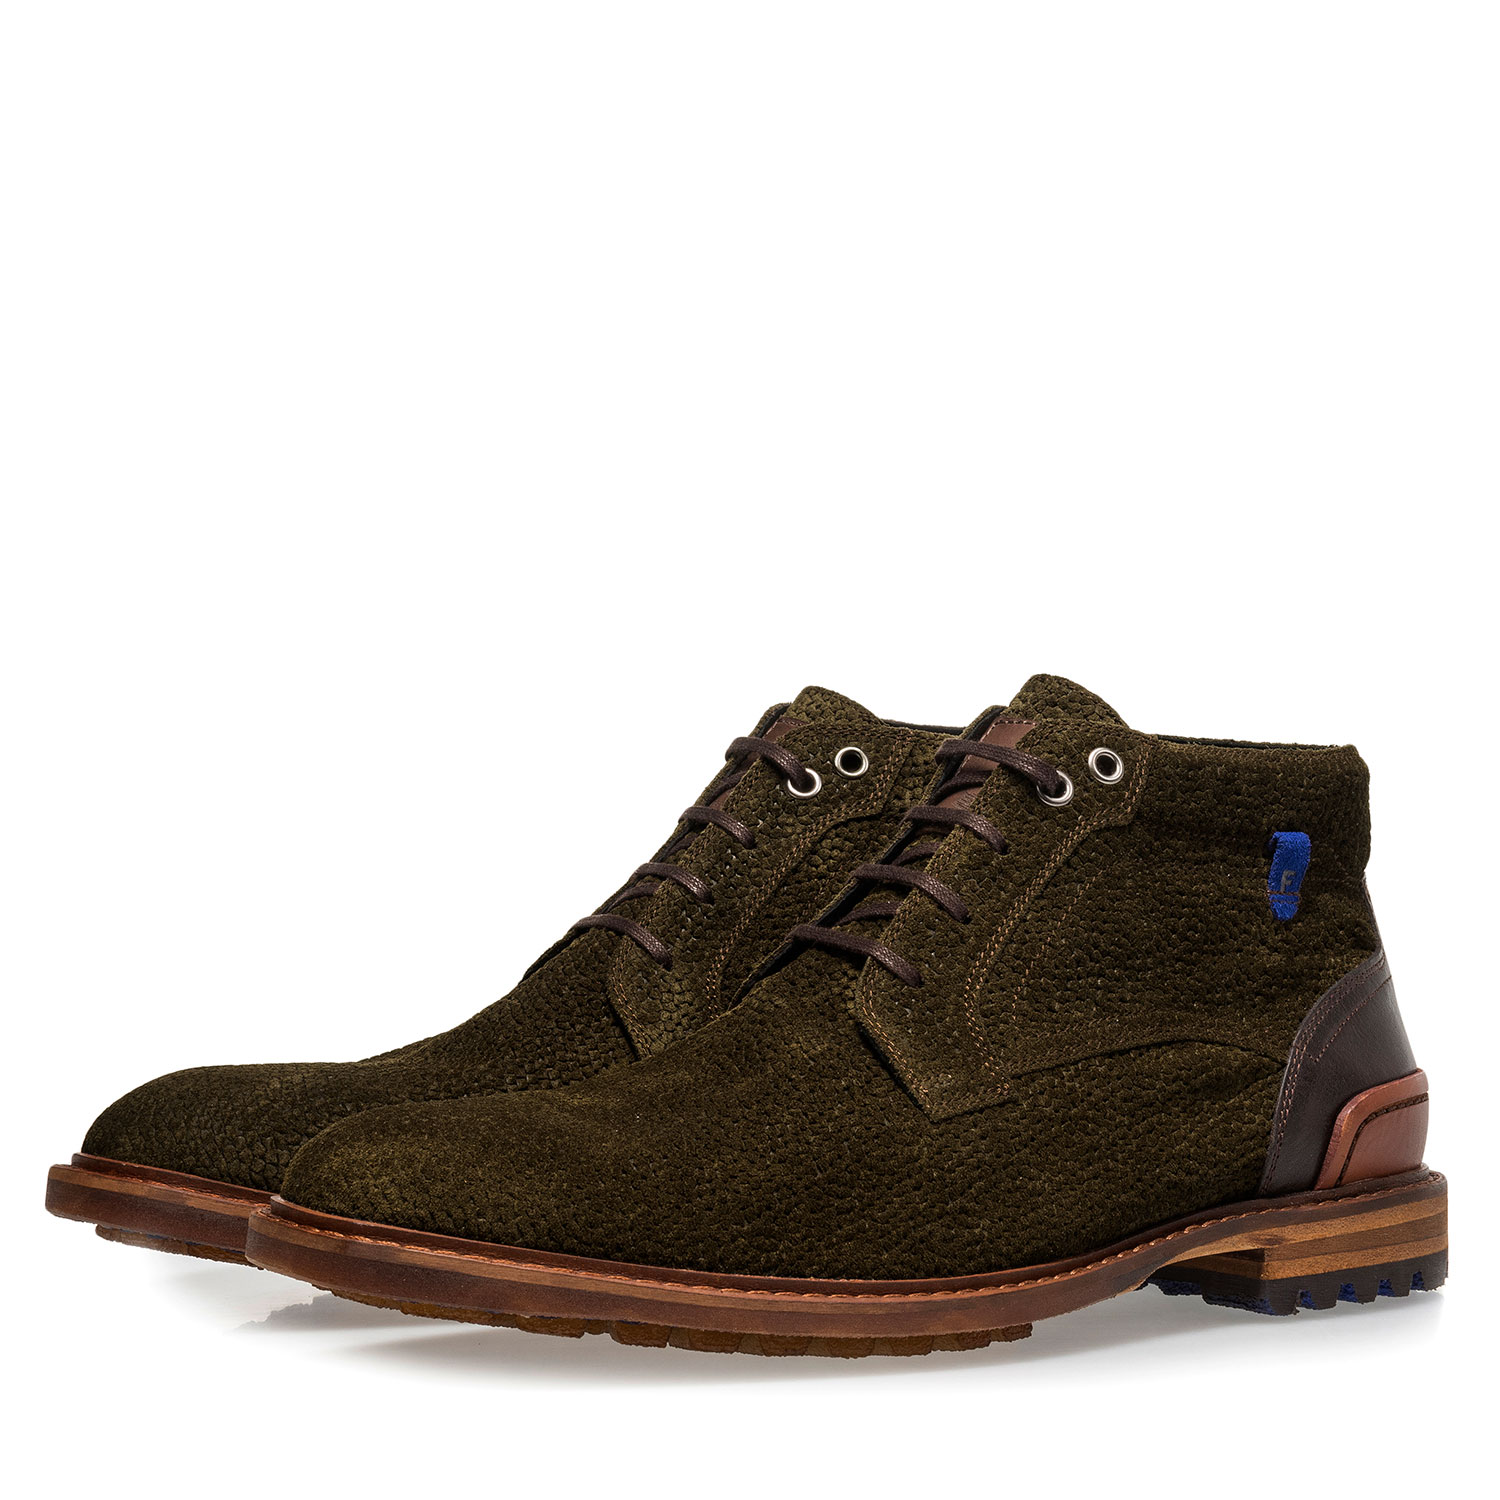 20228/26 - Olive green printed suede leather lace boot